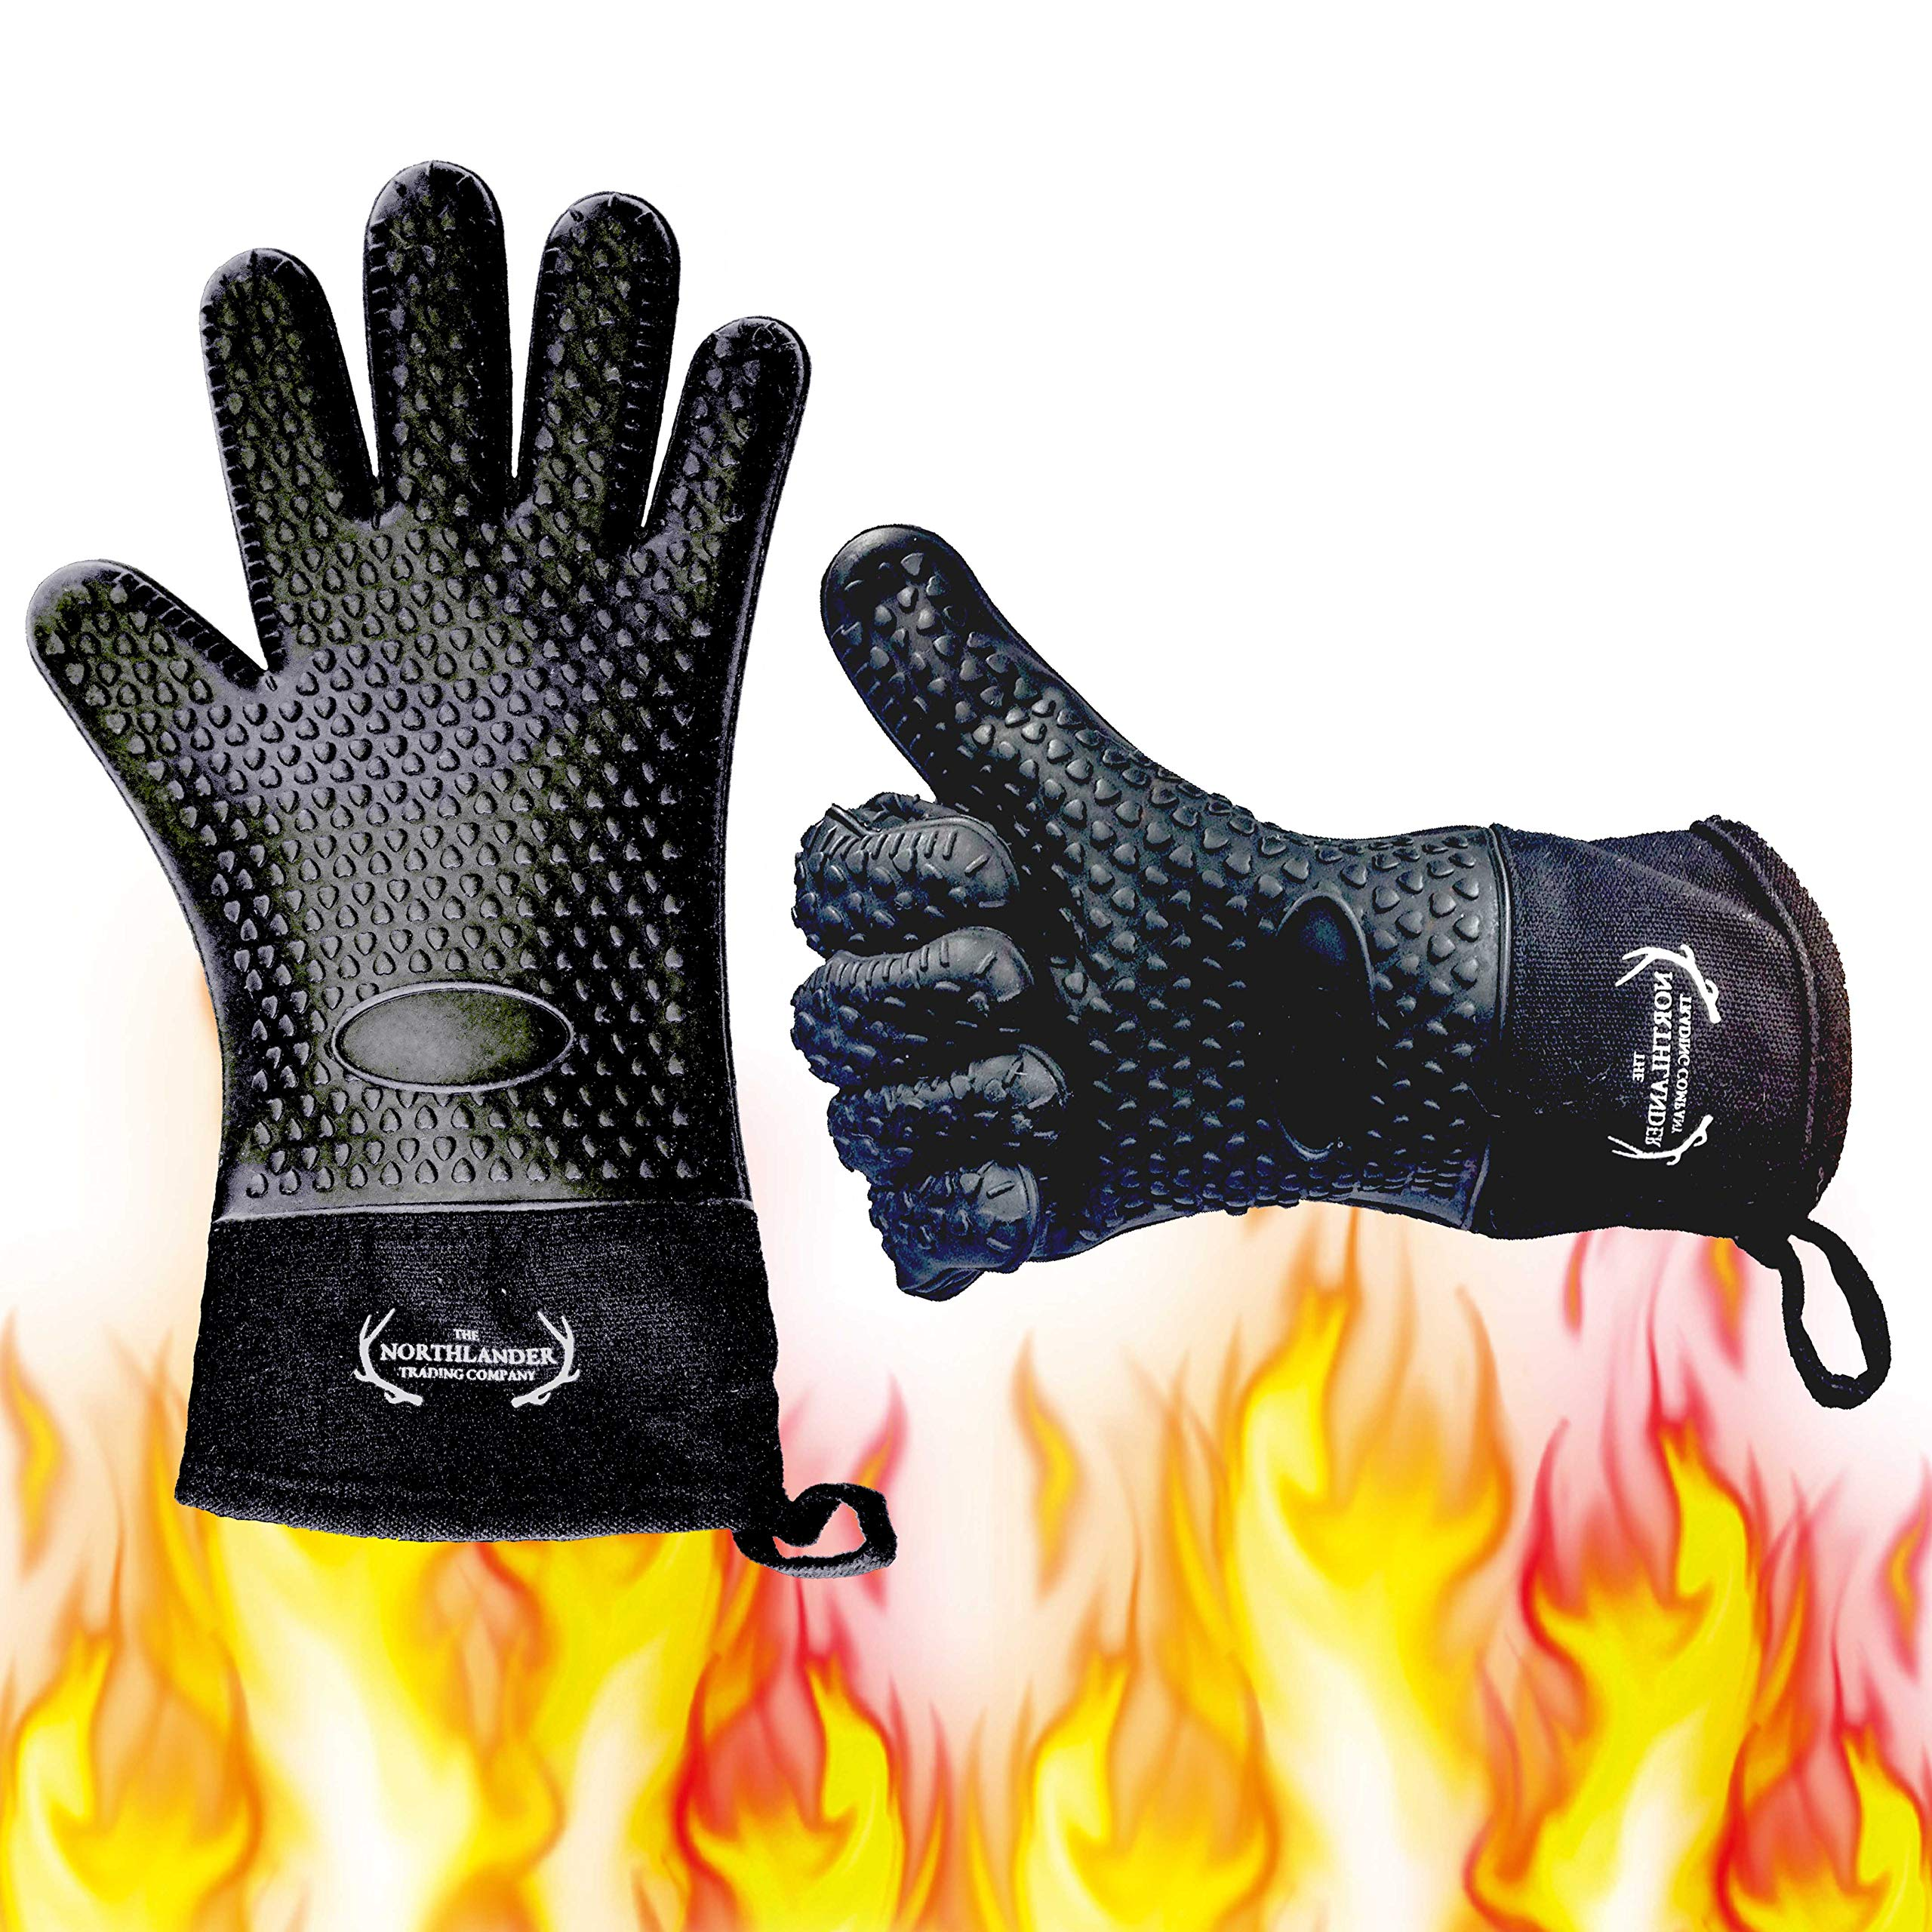 Long Silicone Grill Gloves - Heat Resistant Oven Mitts & Potholders for BBQ, Cooking, Baking - Wrist Protected, Waterproof, Cotton Layer inside, Non-slip Grill Accessories, 1 Size Fits All (Black) by NORTHLANDER